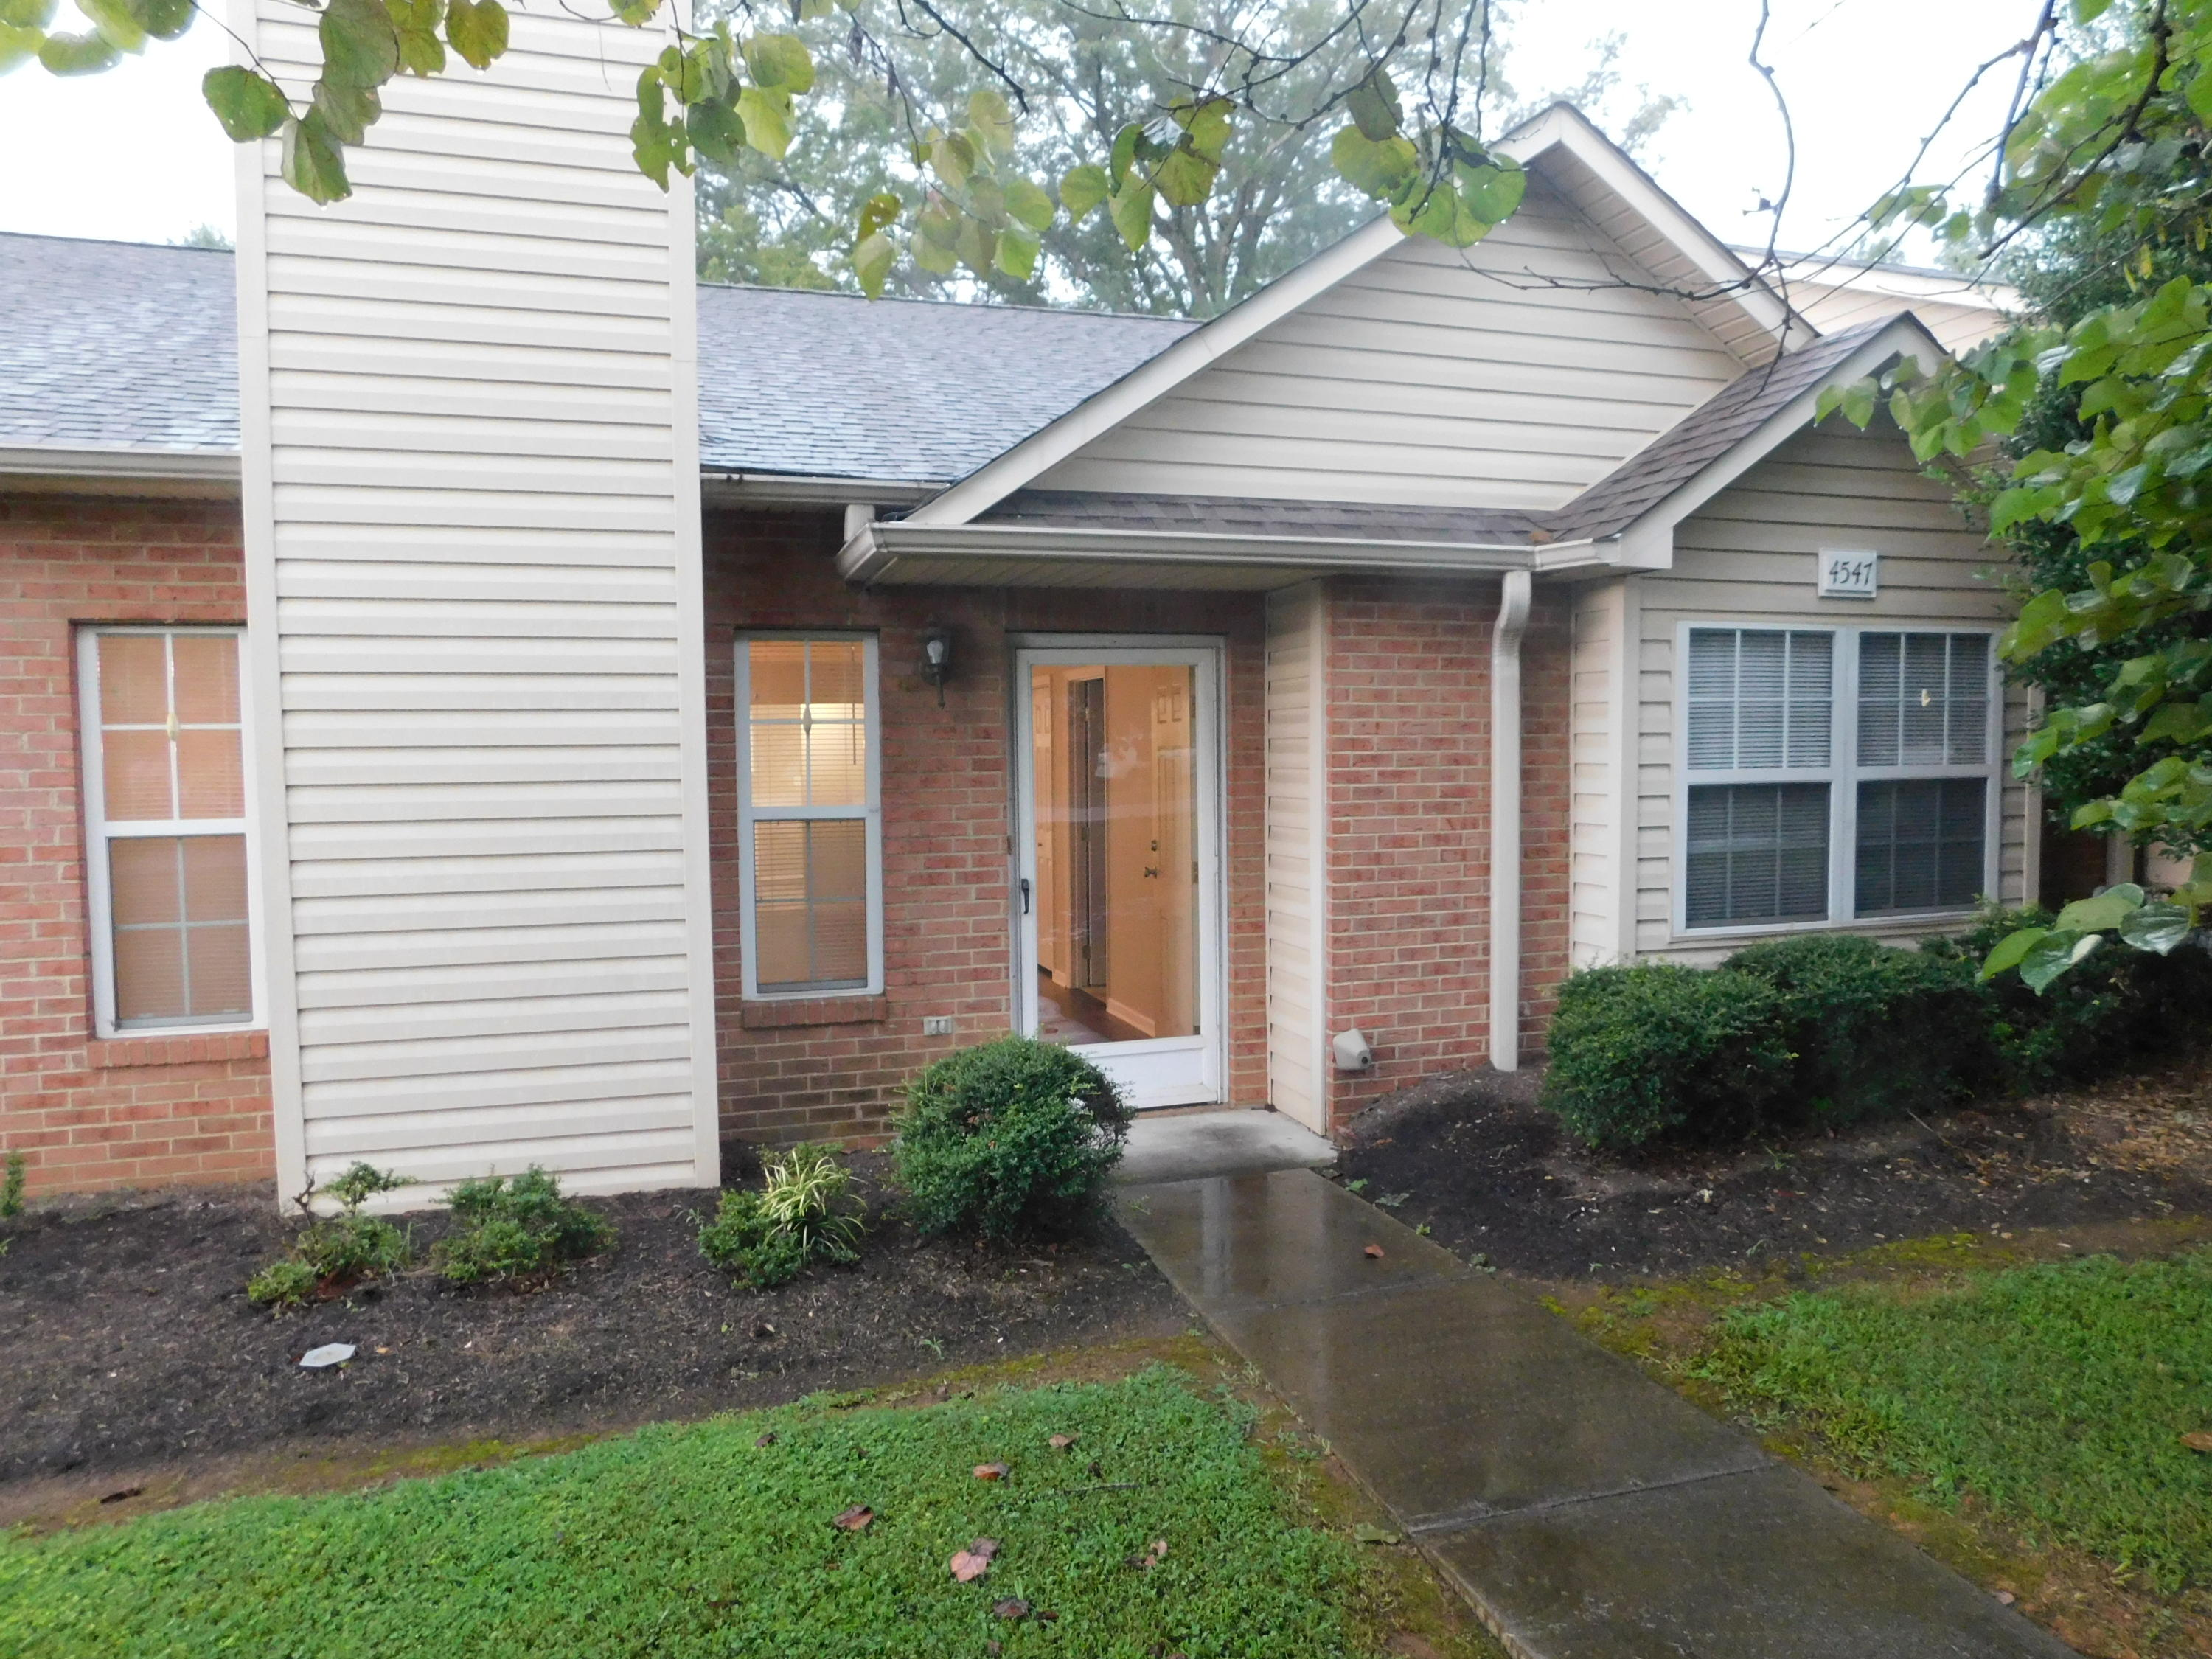 4547 Shamus, Knoxville, Tennessee, United States 37918, 2 Bedrooms Bedrooms, ,2 BathroomsBathrooms,Single Family,For Sale,Shamus,1126208